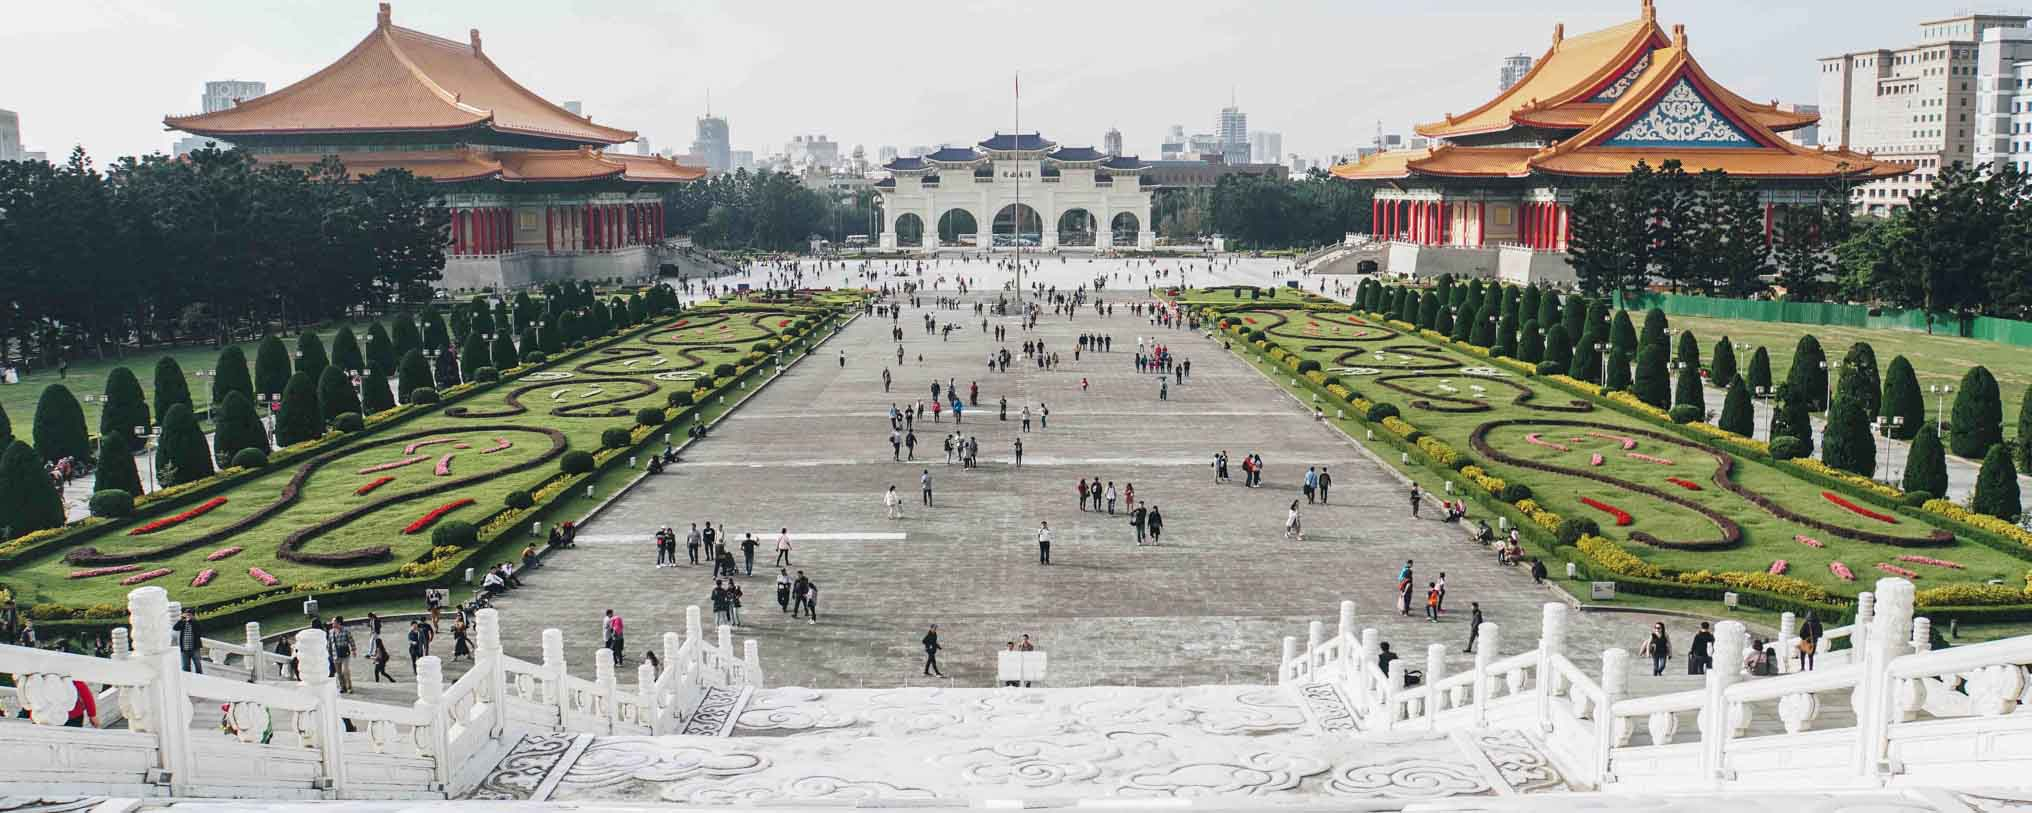 chiang kai shek memorial hall with people